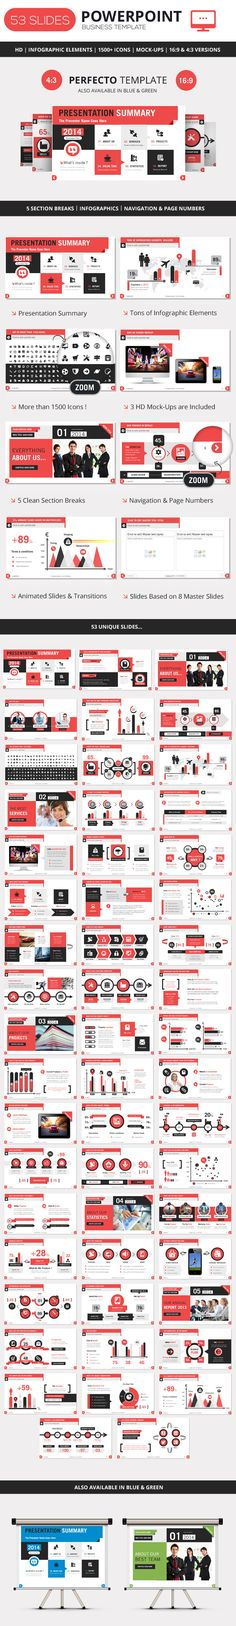 Infographic Ideas infographic proposal template : Business Proposal Template